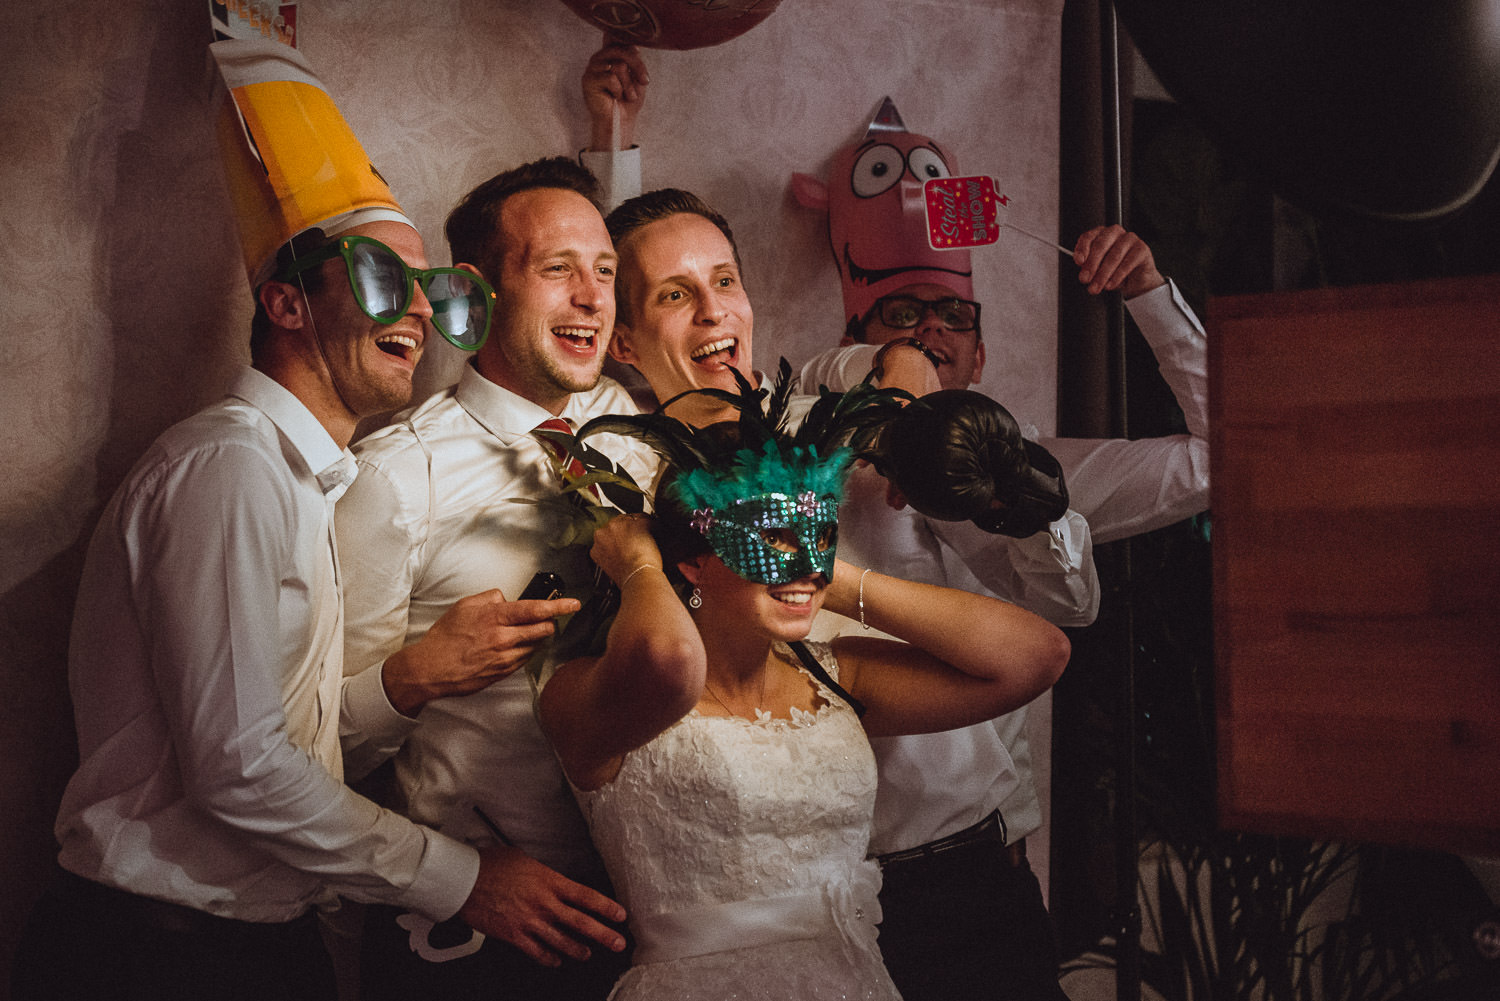 photobooth, wedding photography, Fotobox, Hochzeitsfotos lustig